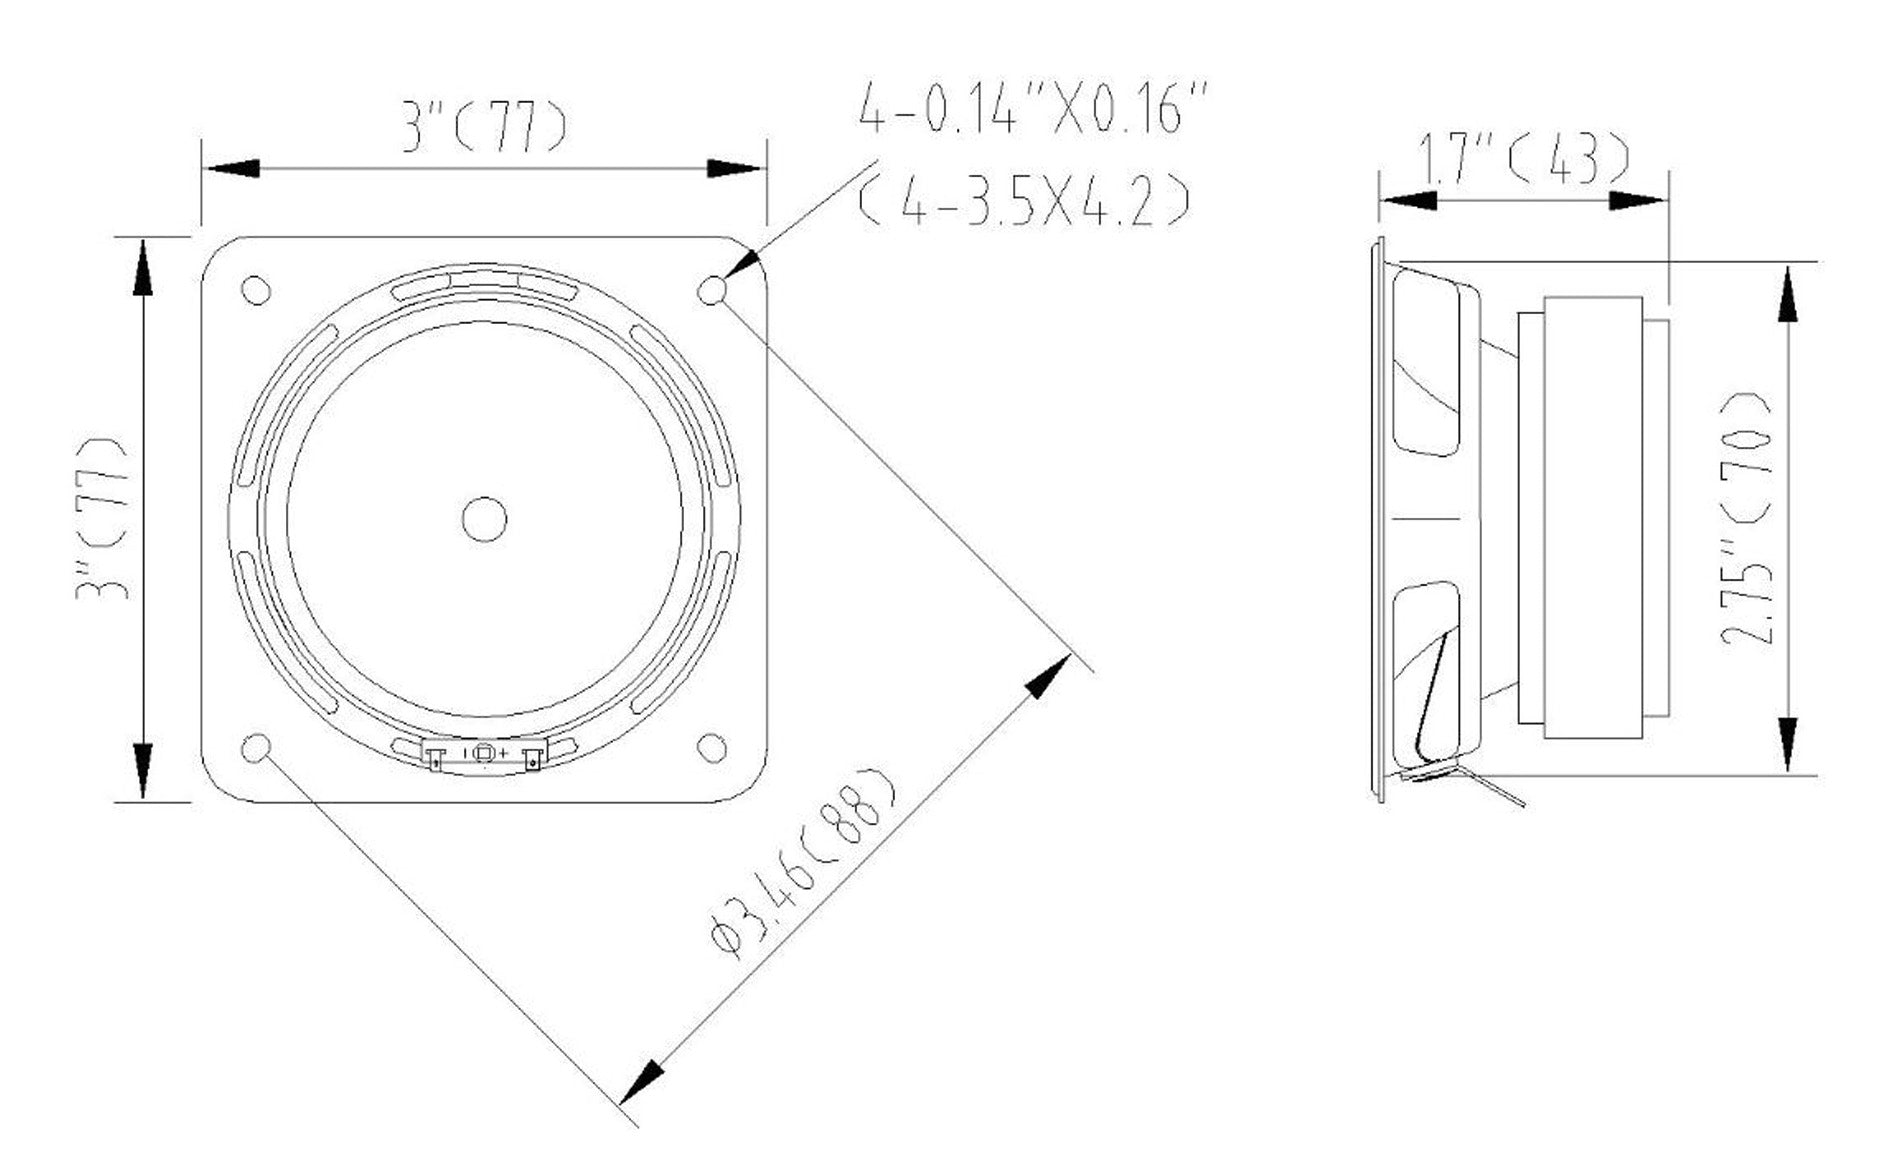 """Sound Town STWF-3 3"""" Full-Range Replacement Drivers, for PA/DJ and Column Speakers - Mounting Information, Suggested Enclosure Volume, Size & Dimensions"""